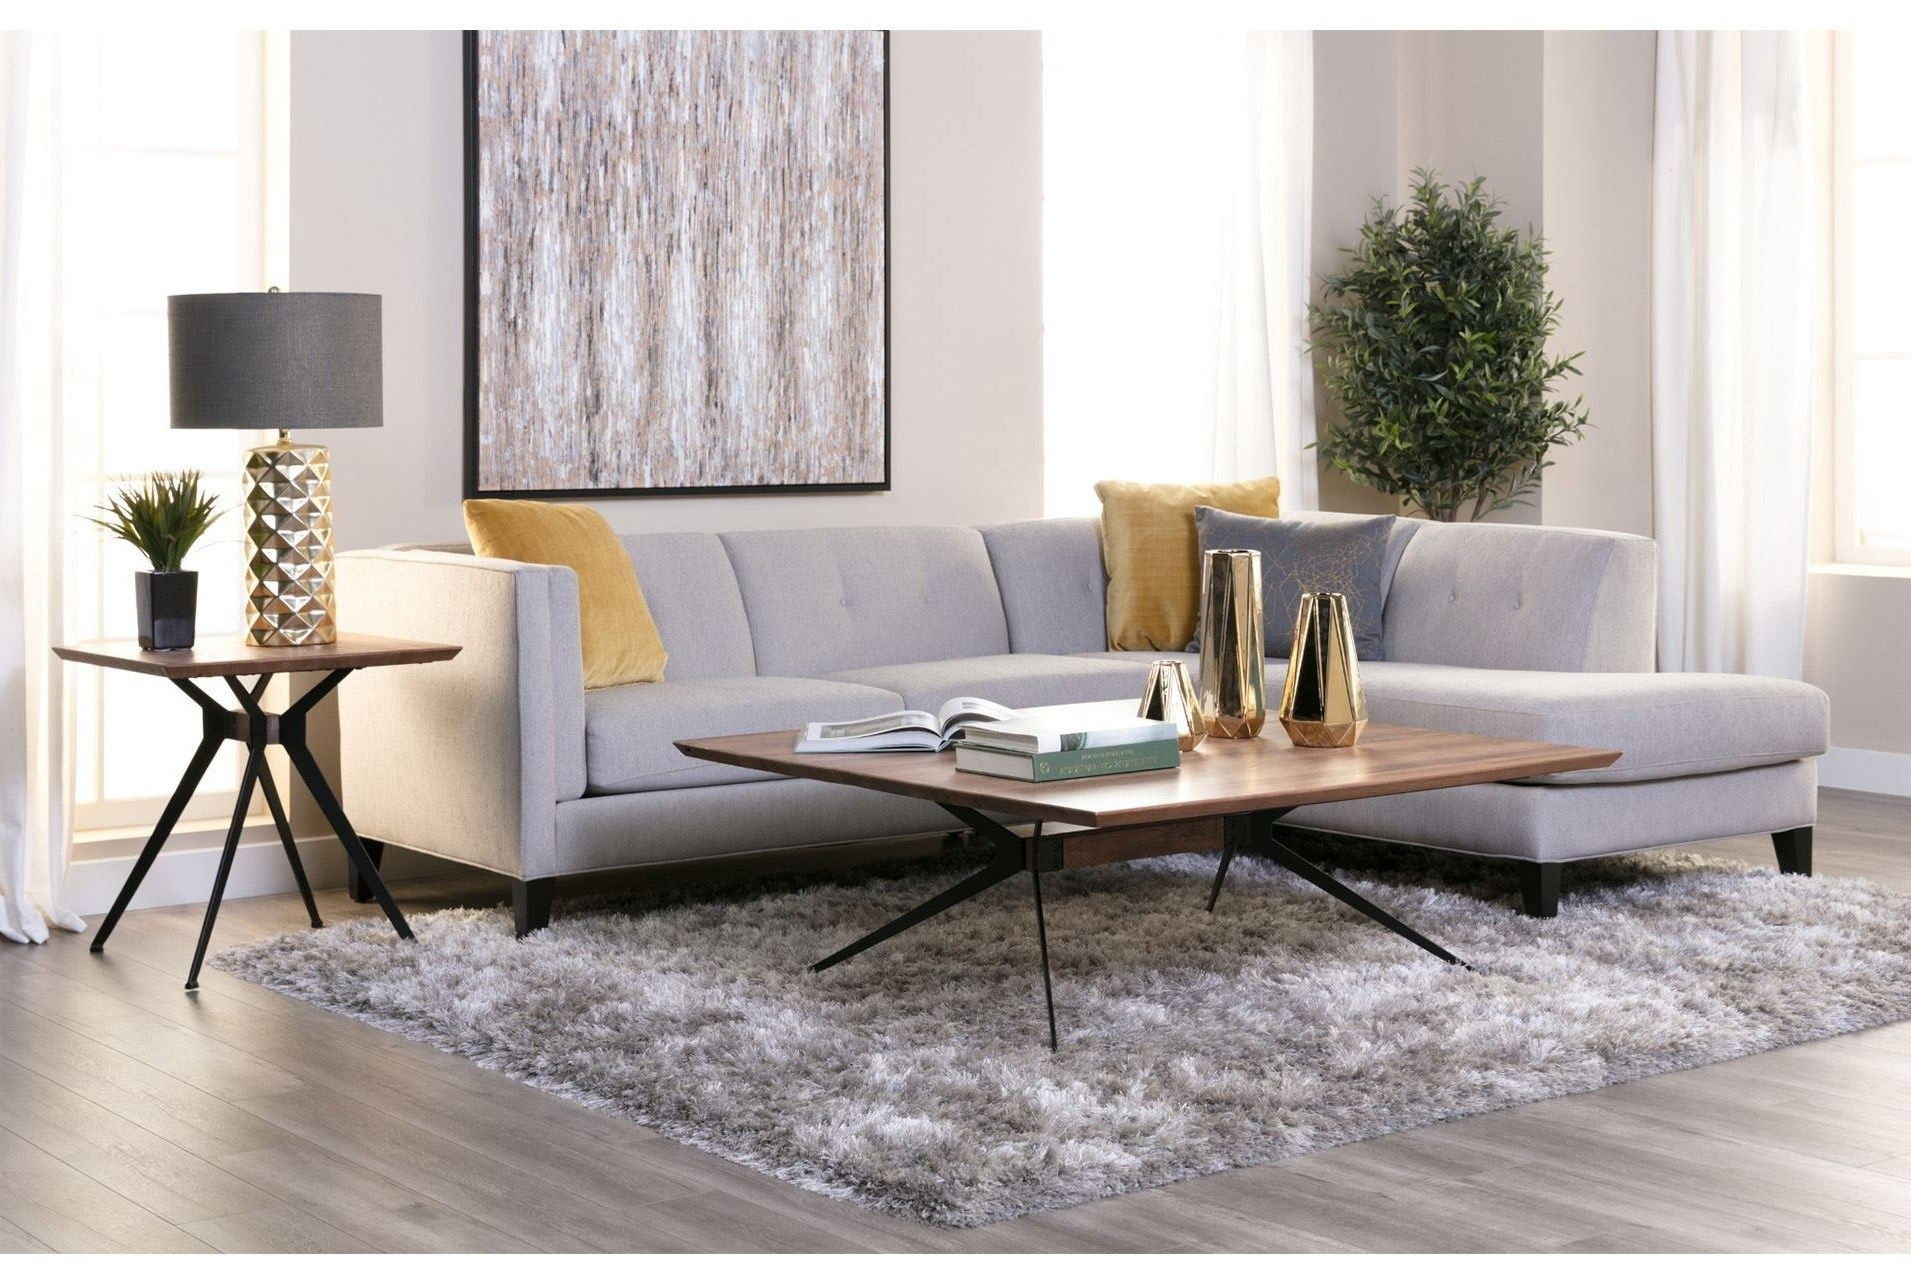 Avery 2 Piece Sectional W/raf Armless Chaise | Livingroom Pillow Within Avery 2 Piece Sectionals With Raf Armless Chaise (View 4 of 25)